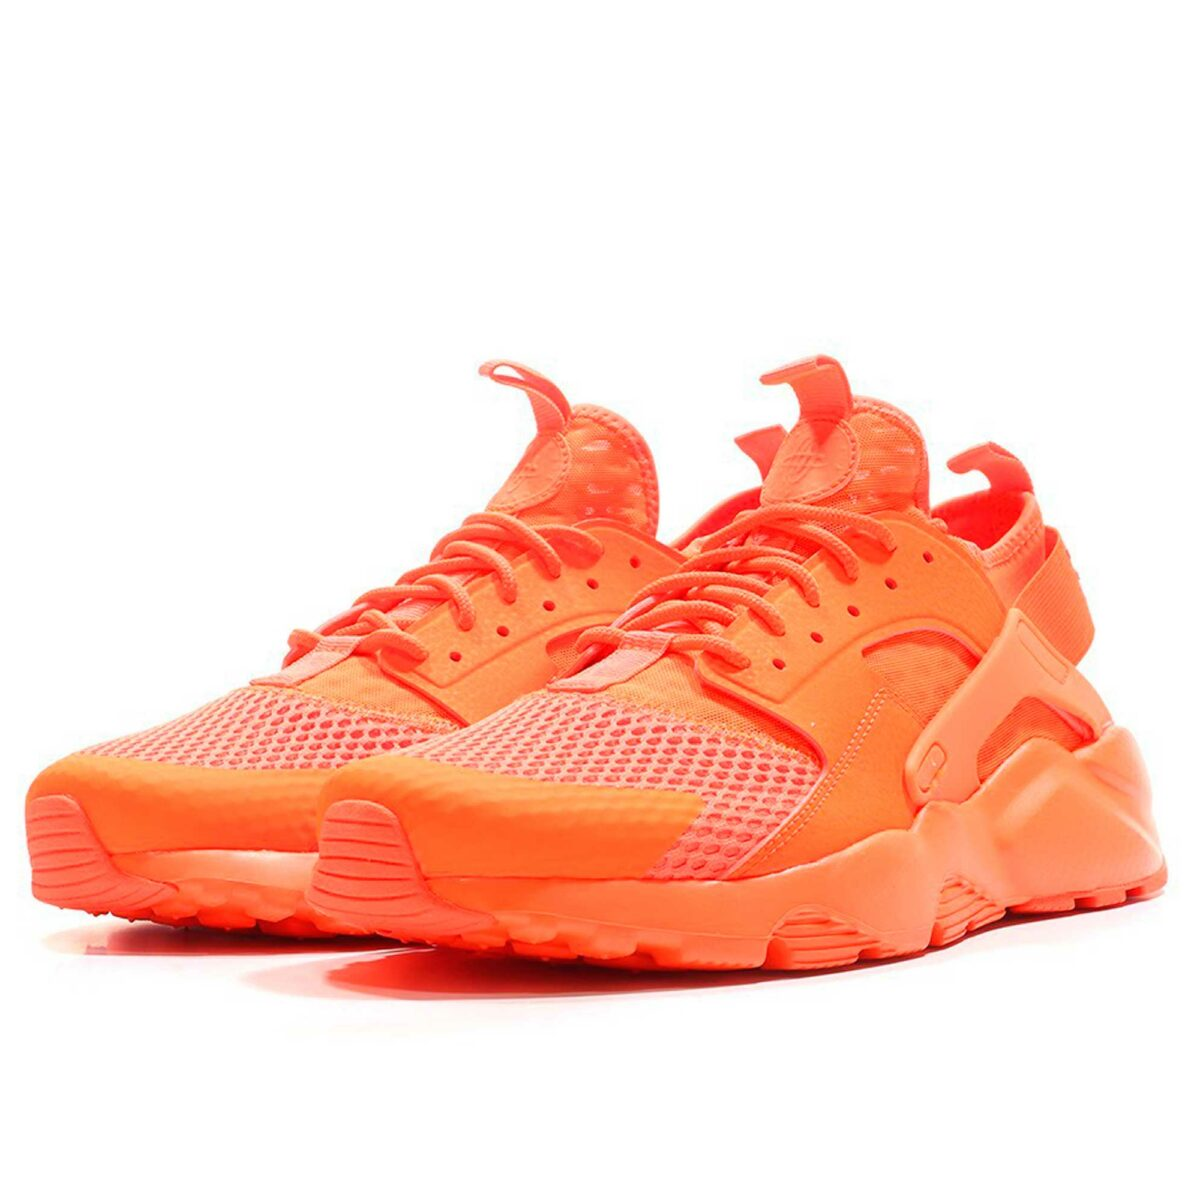 nike air huarache run ultra breathe red 833147_800 купить